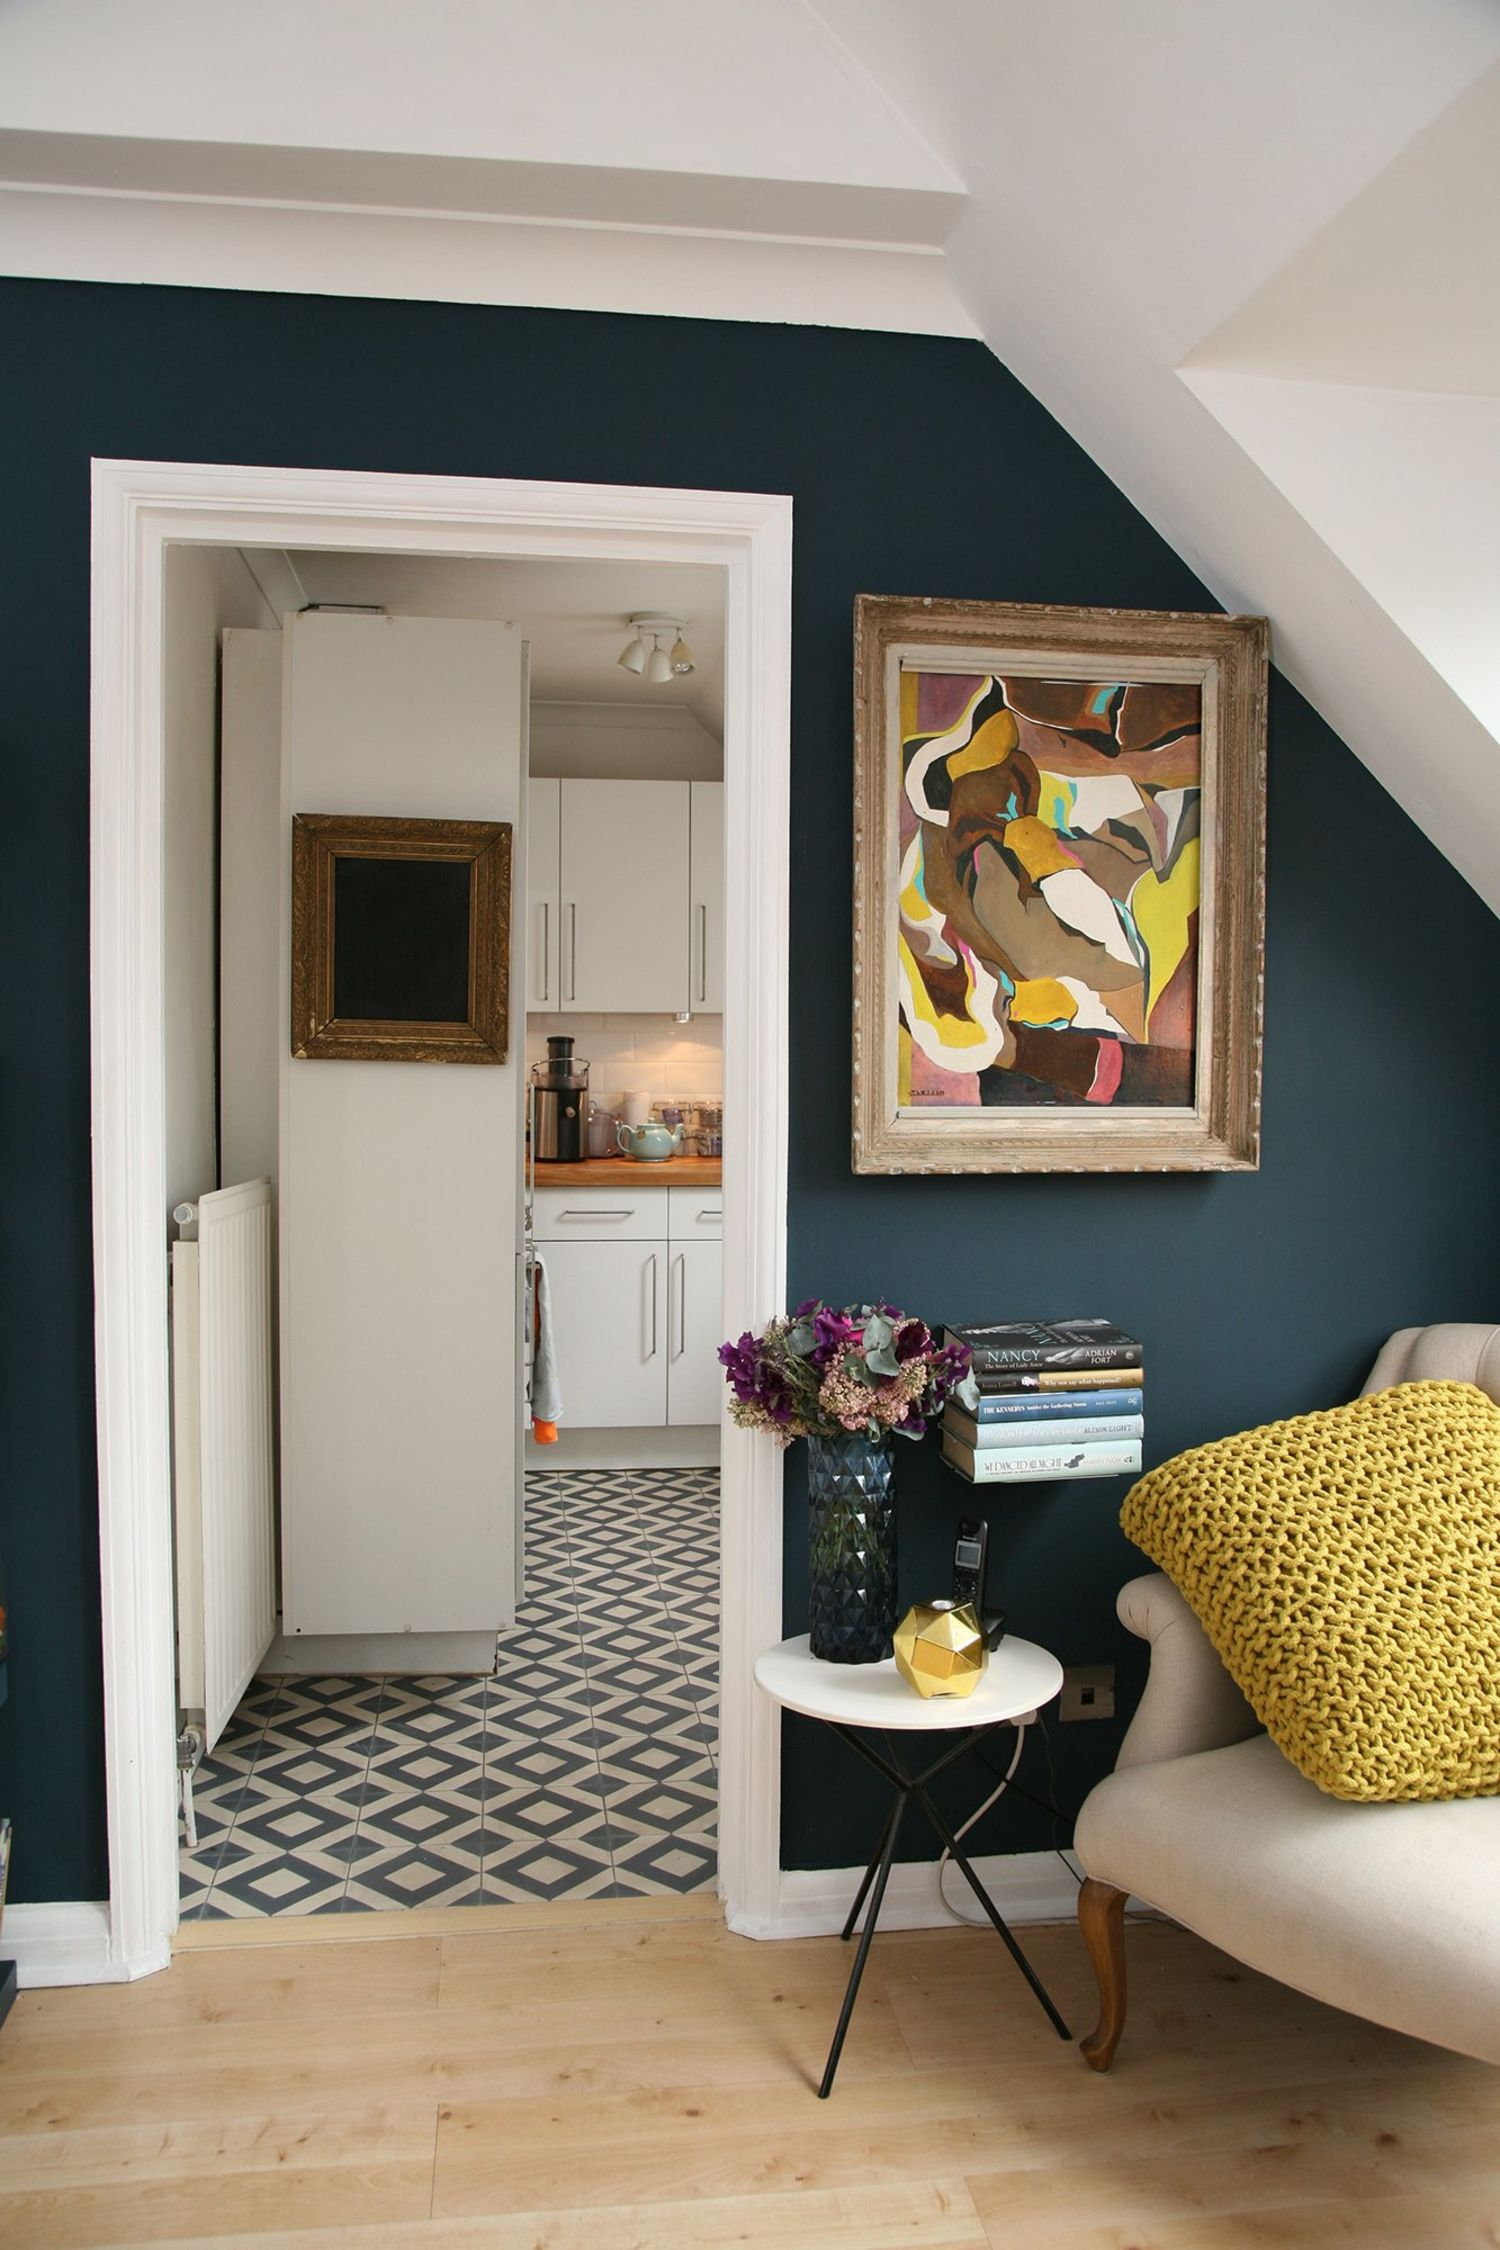 24 Simple Apartment Decoration You Can Steal: Living Room Paint Ideas: 10 Easy-to-Live-With- Colors